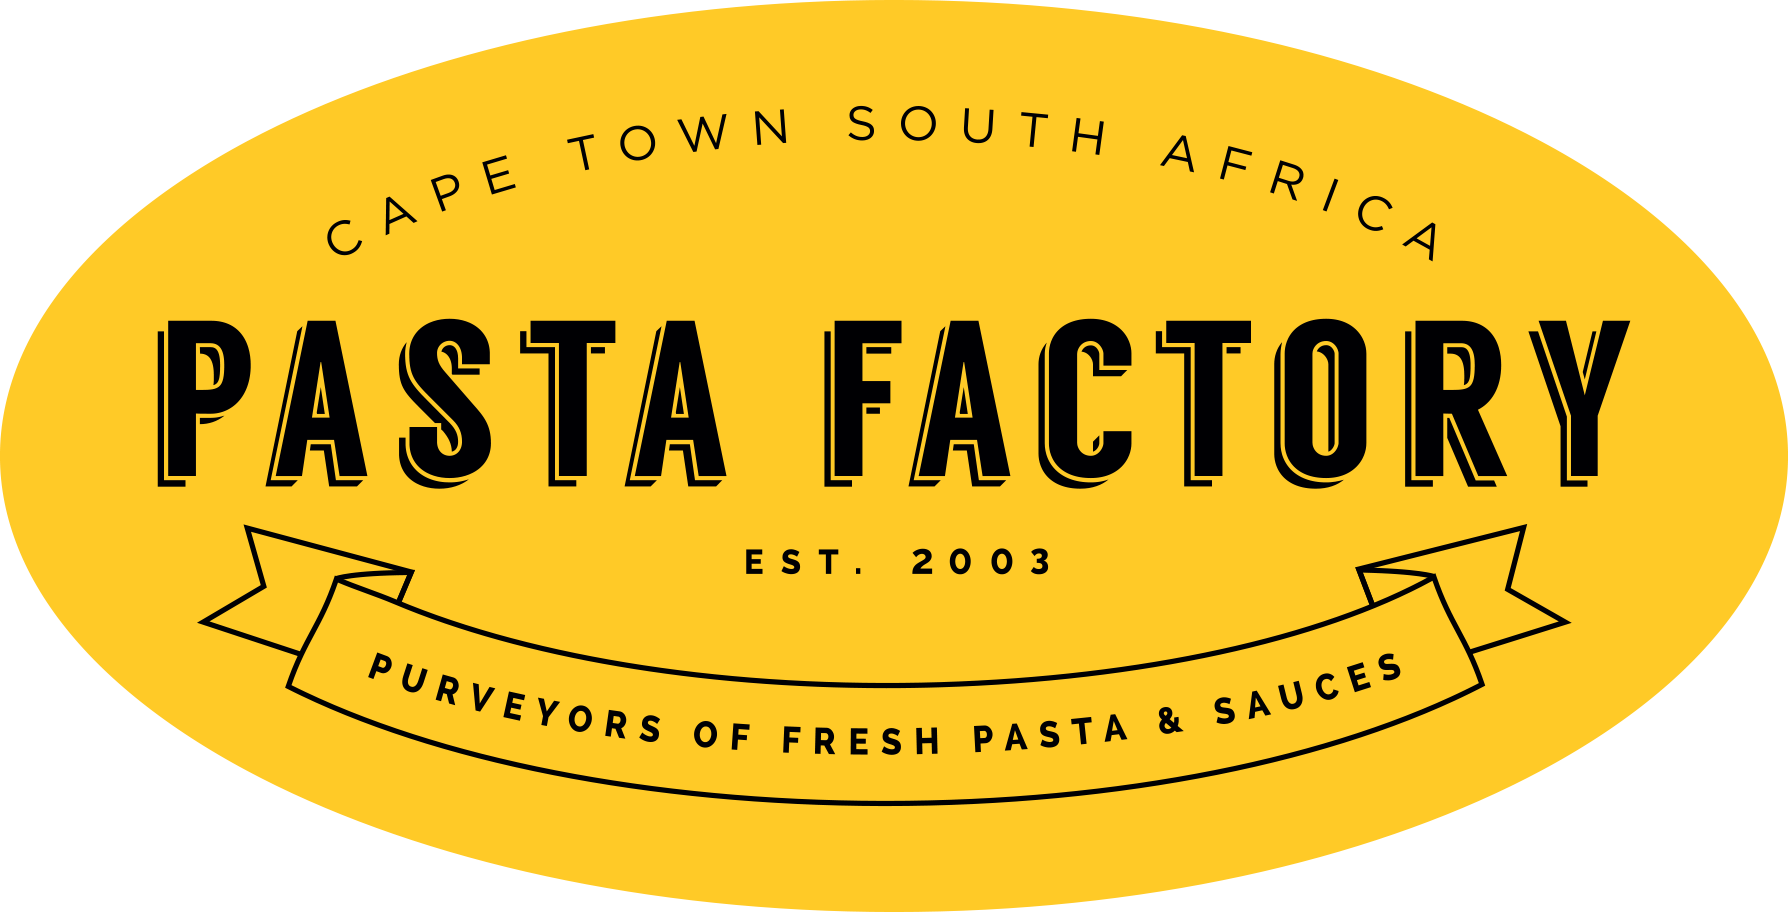 The Pasta Factory